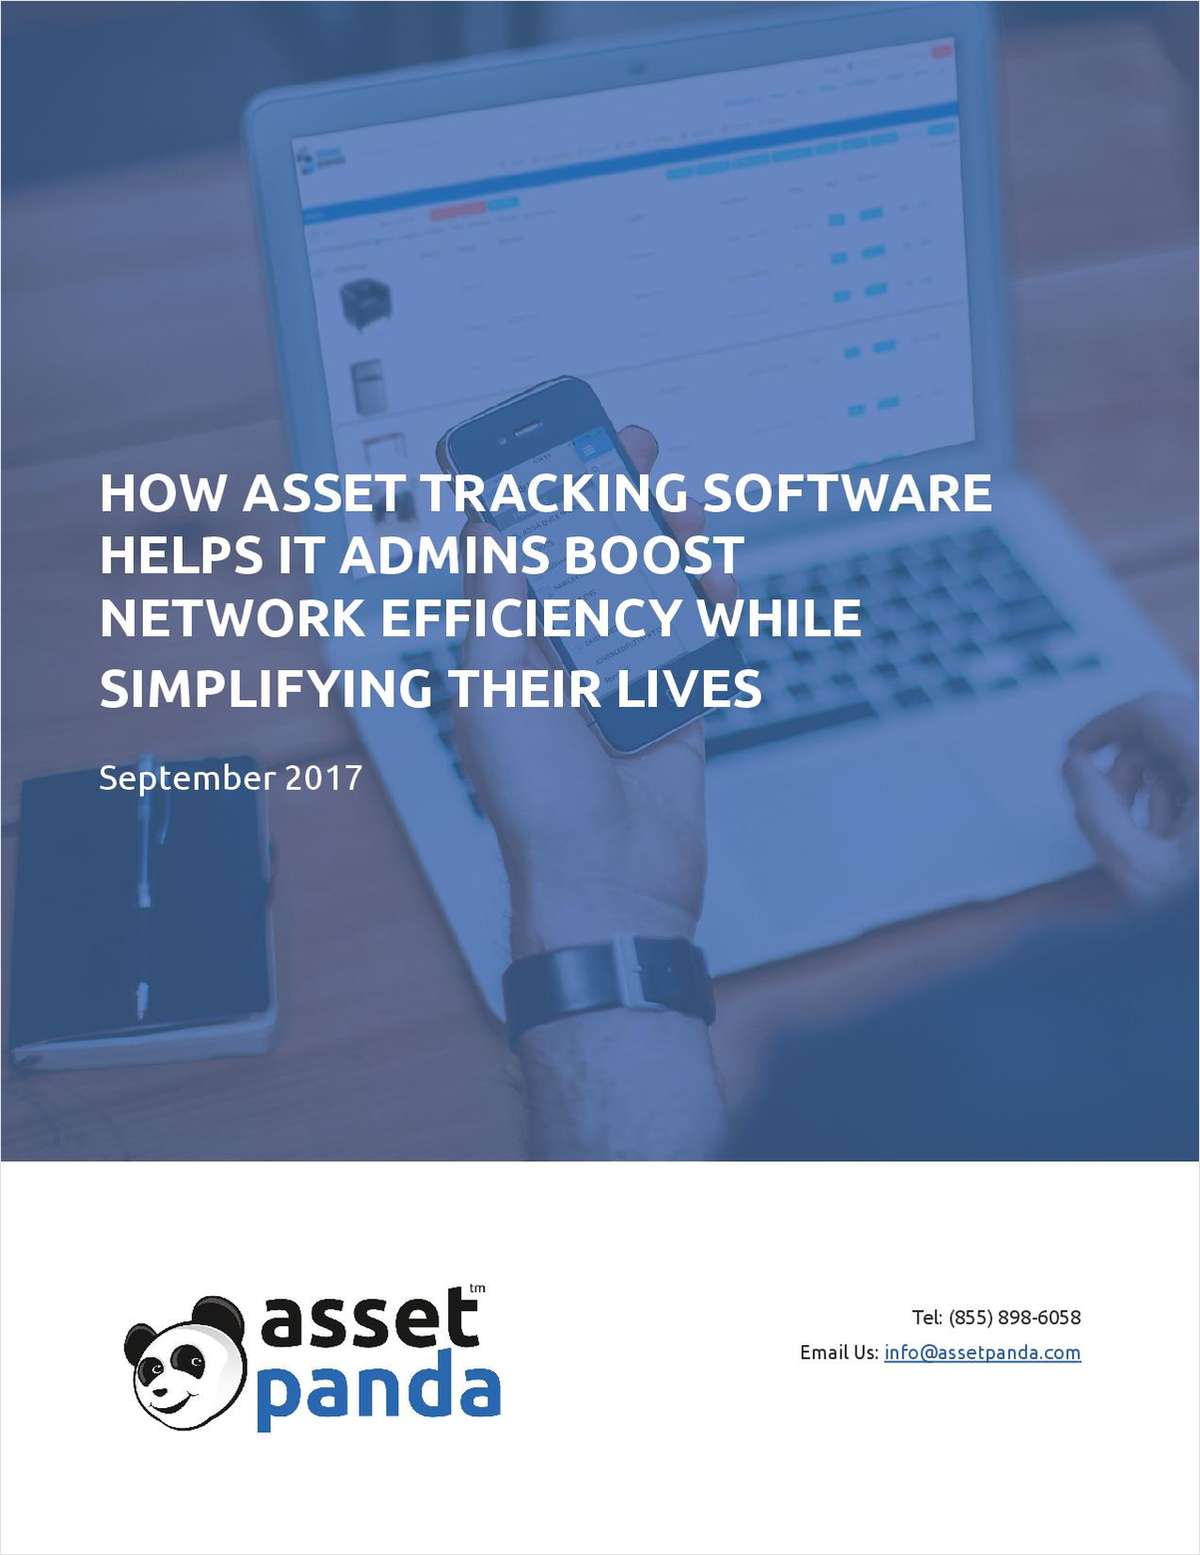 How Asset Tracking Software Helps IT Admins Boost Network Efficiency While Simplifying Their Lives